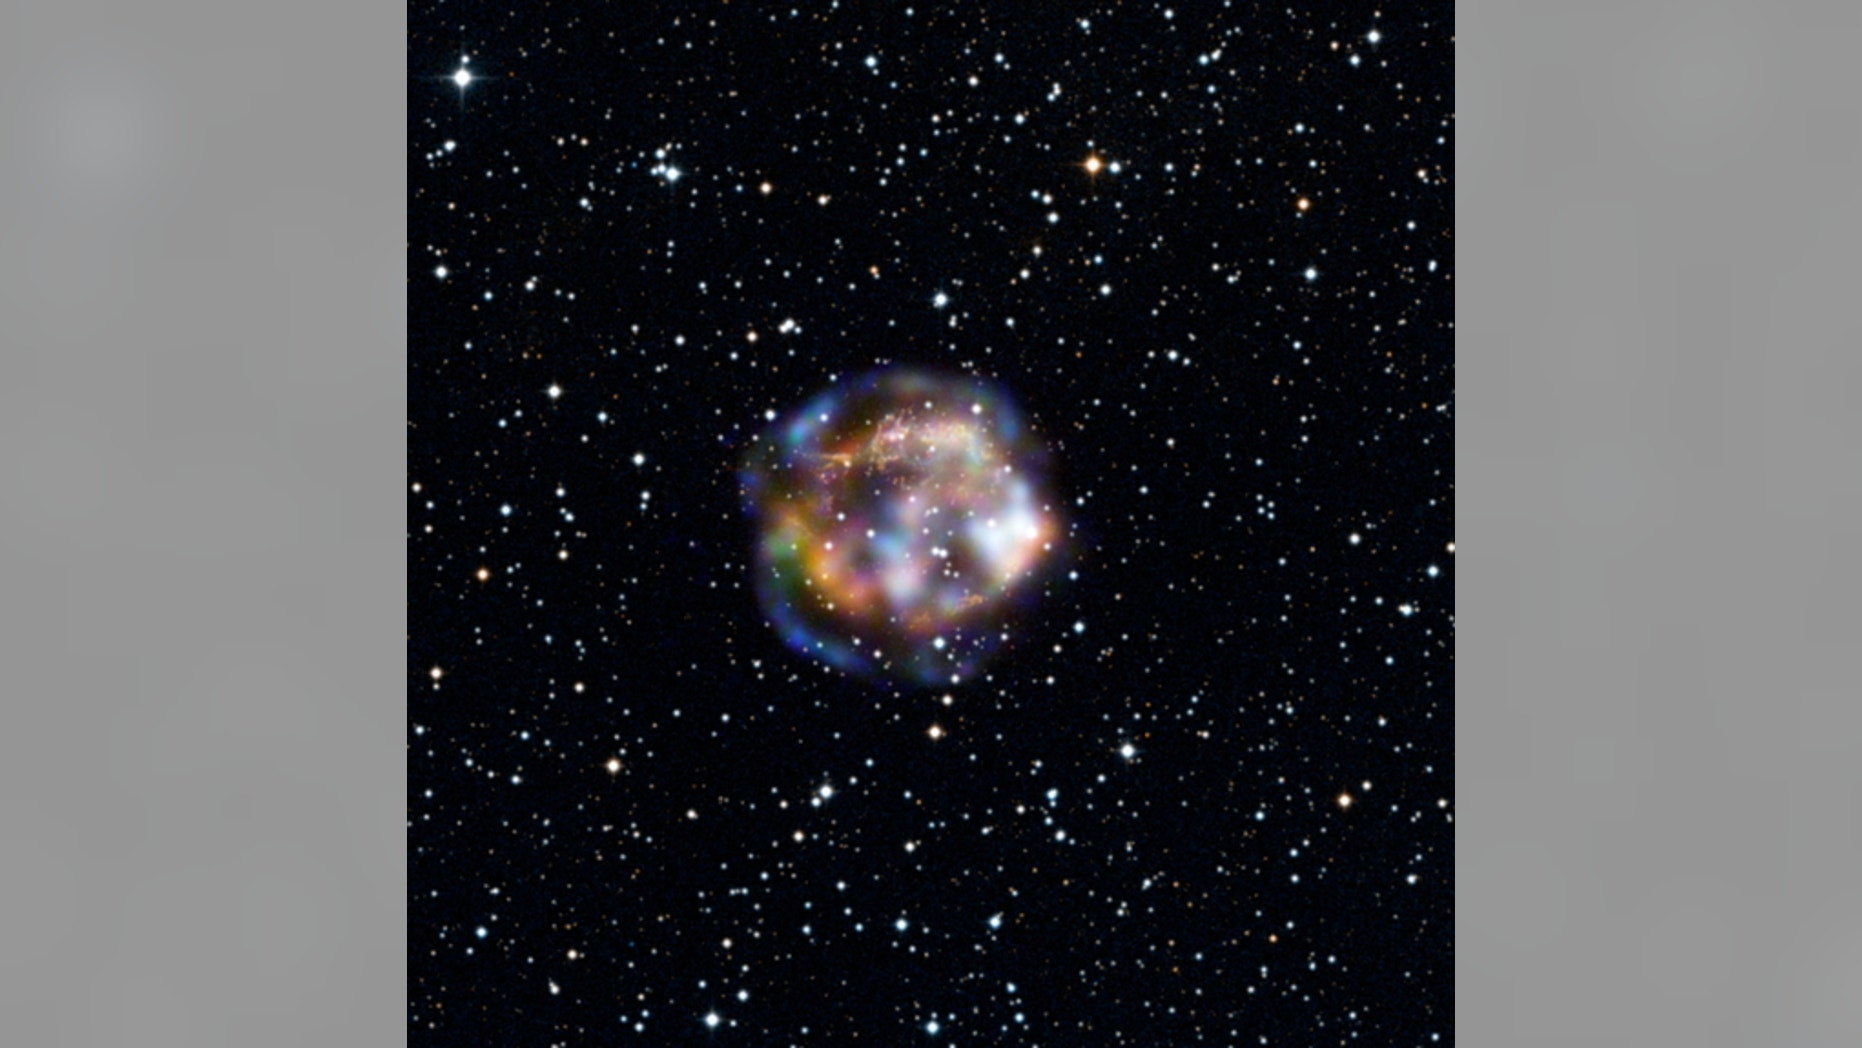 This new view of the historical supernova remnant Cassiopeia A, located 11,000 light-years away, was taken by NASA's Nuclear Spectroscopic Telescope Array, or NuSTAR. Image released Jan. 7, 2013.